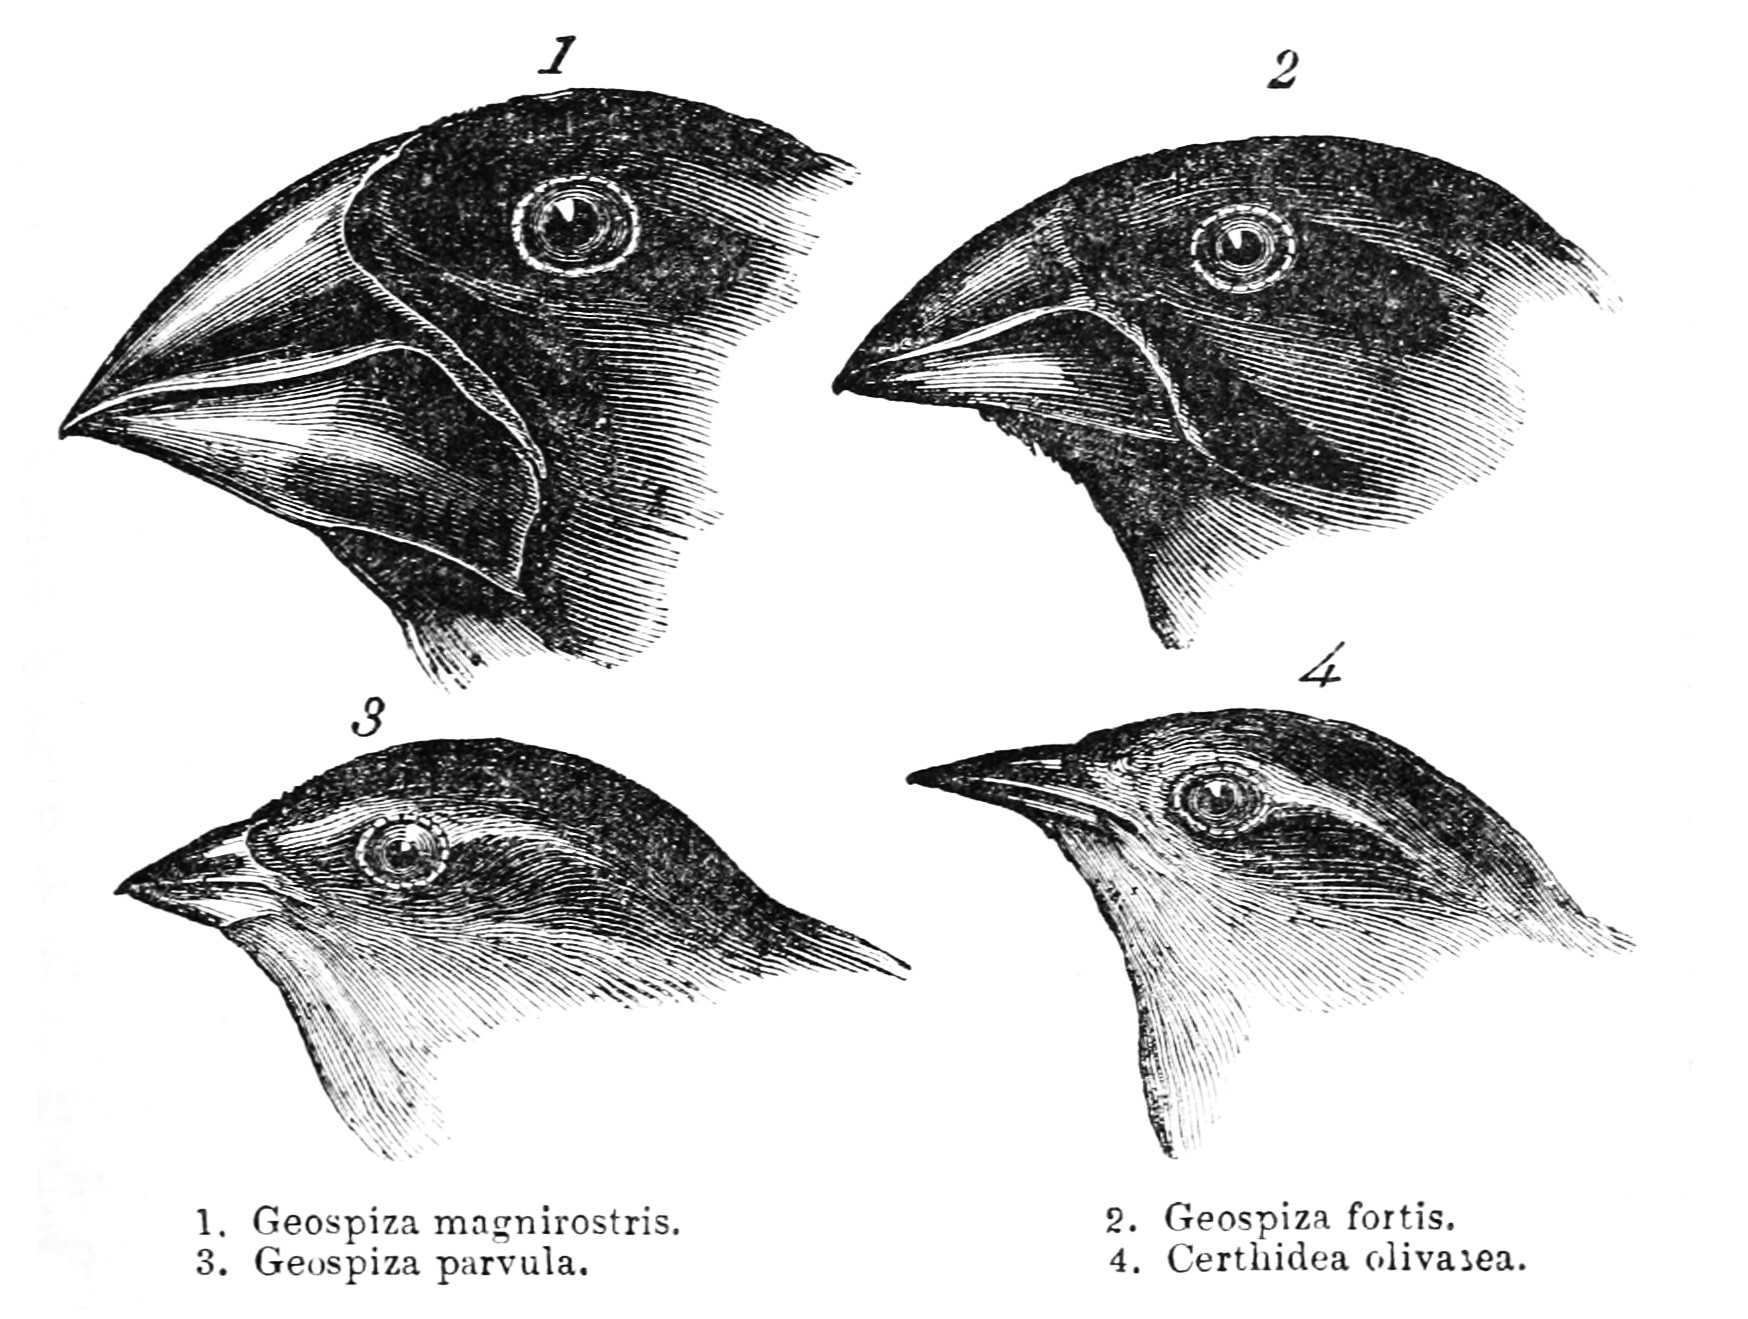 Darwin's_finches_by_Gould.jpg